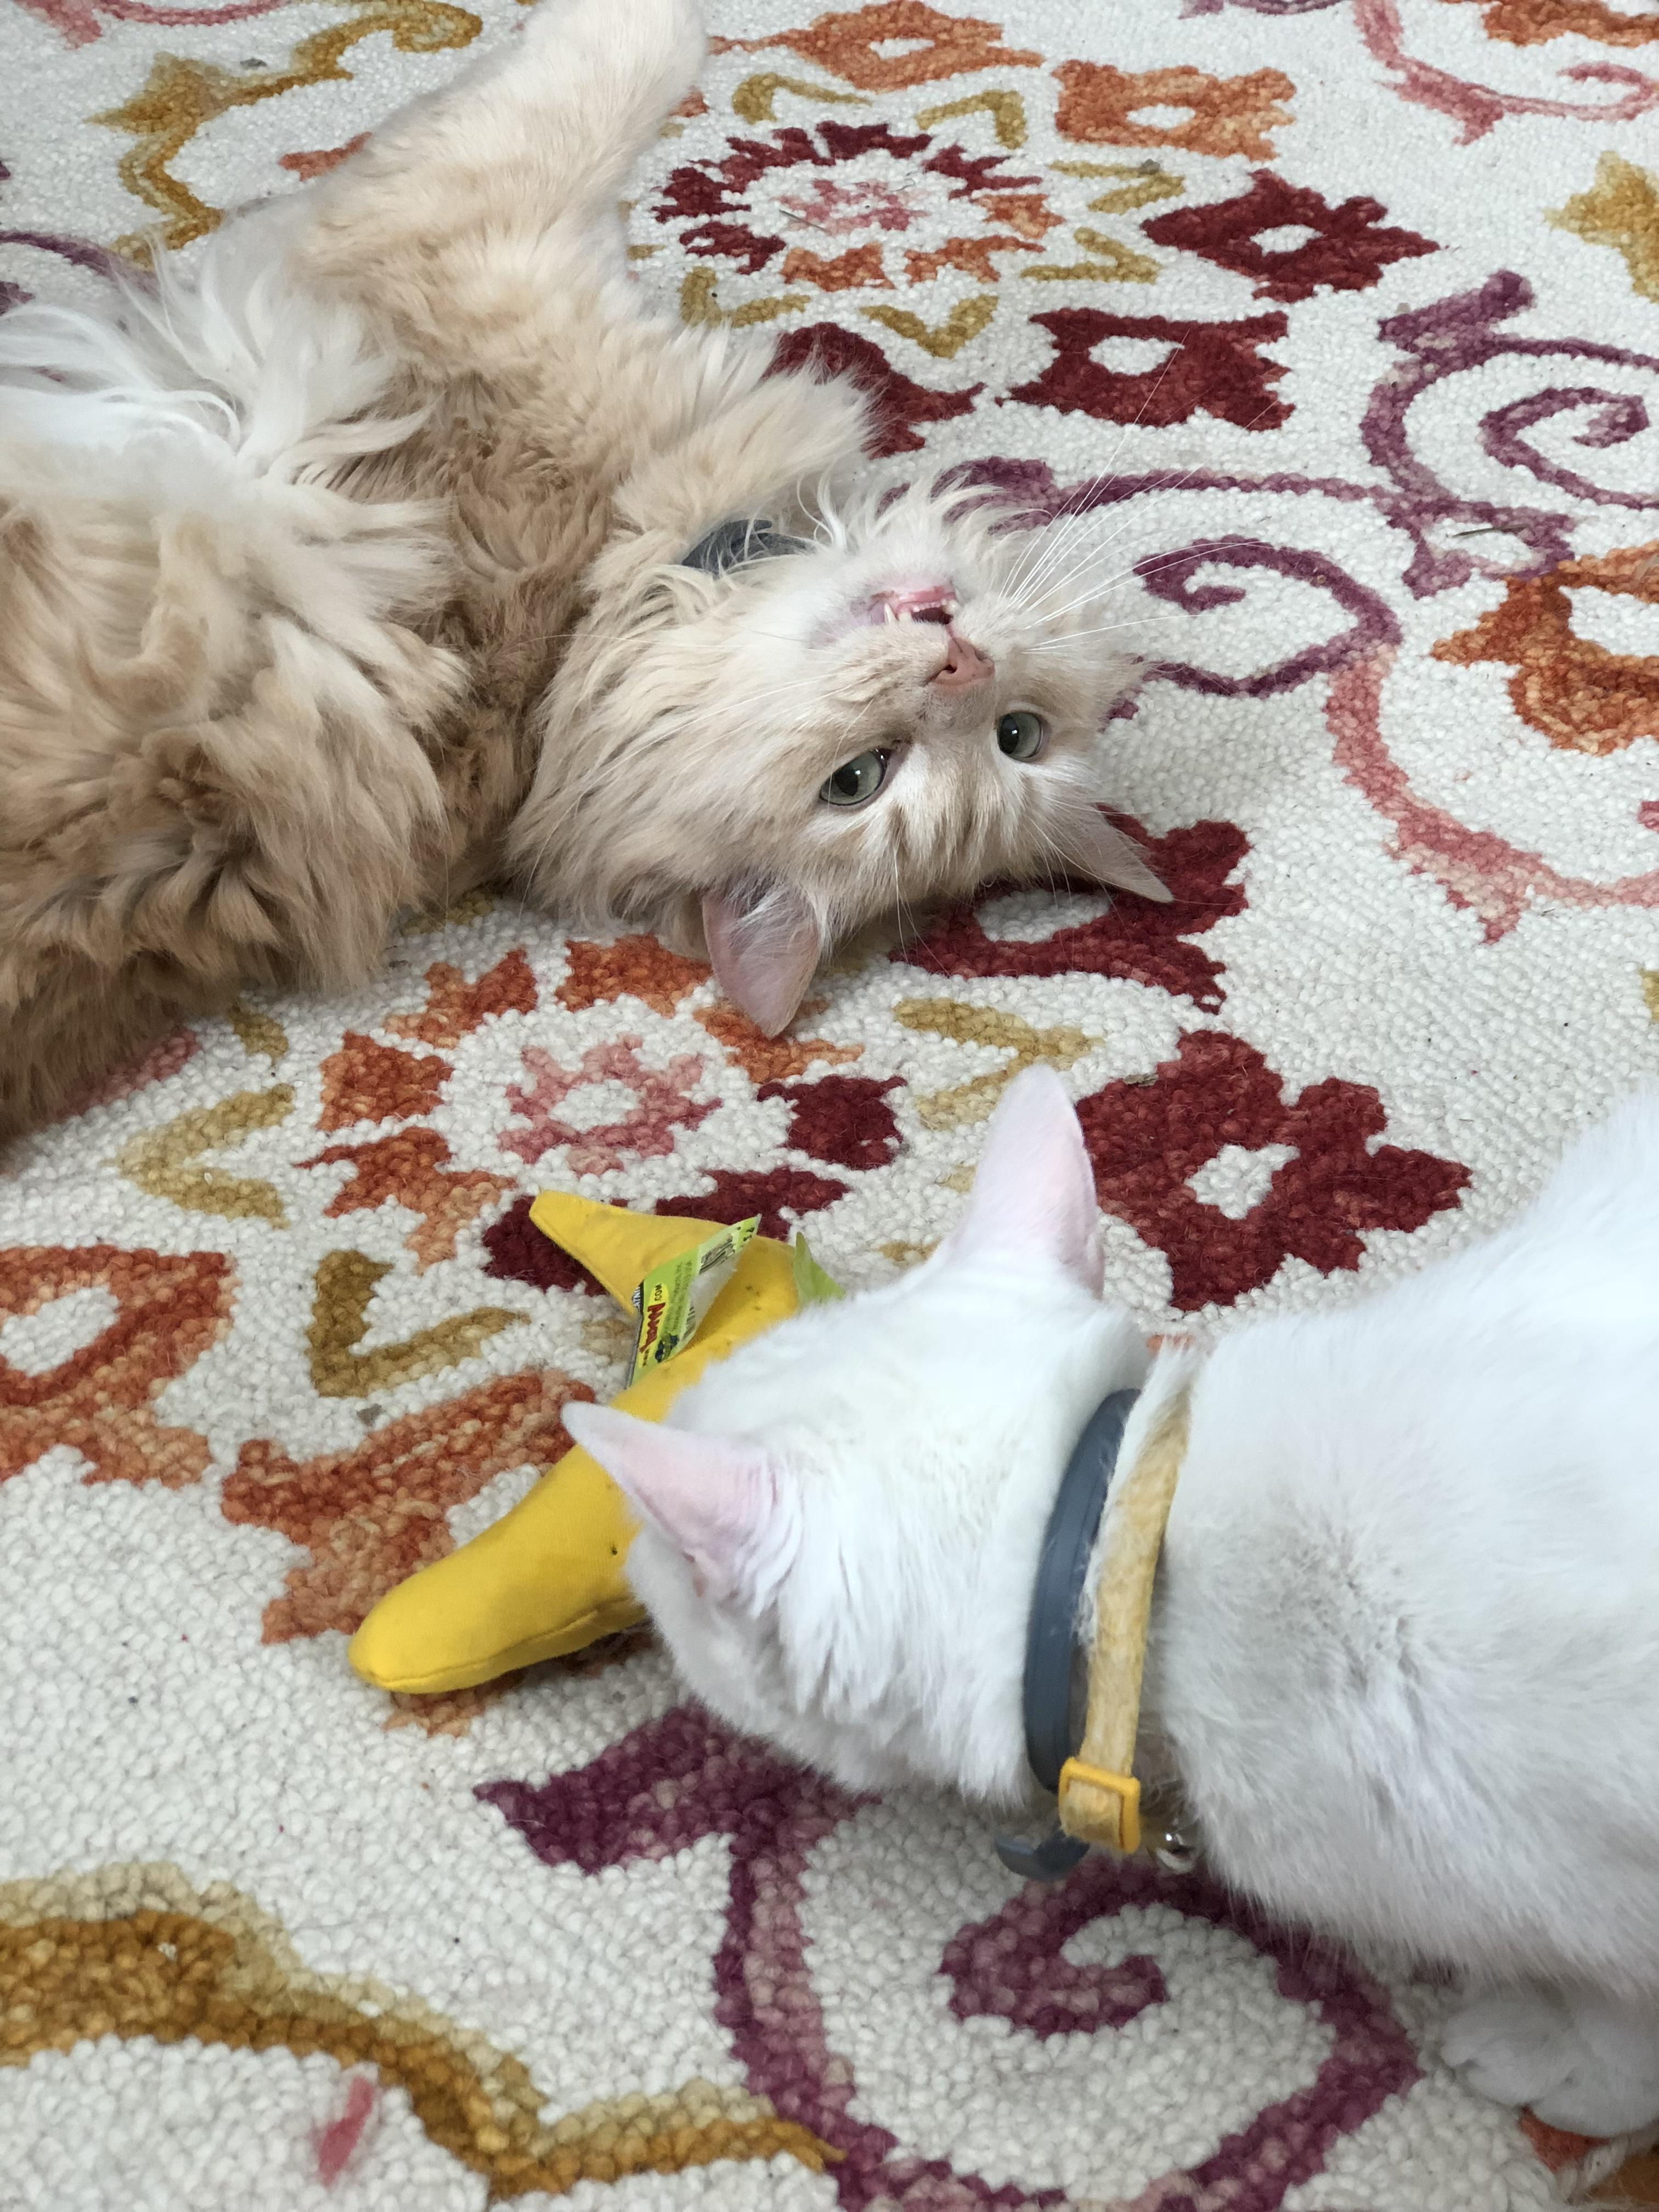 Two cats playing with catnip toy